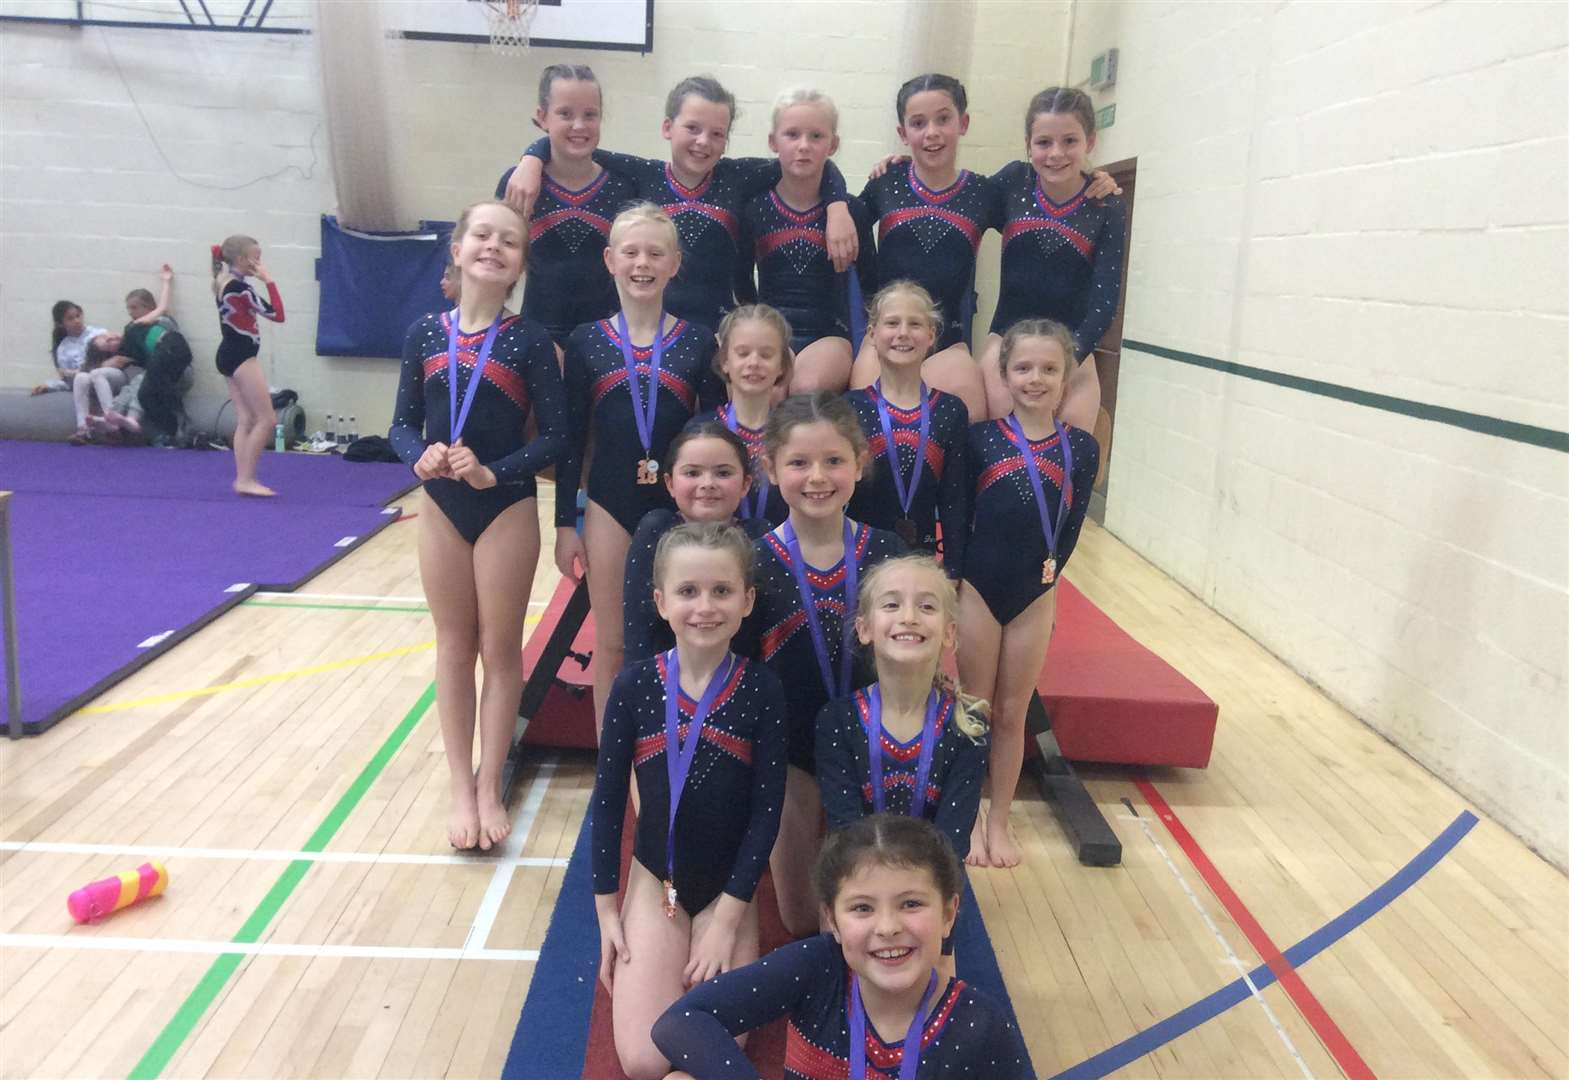 GYMNASTICS: Stamford set standard at coveted competition